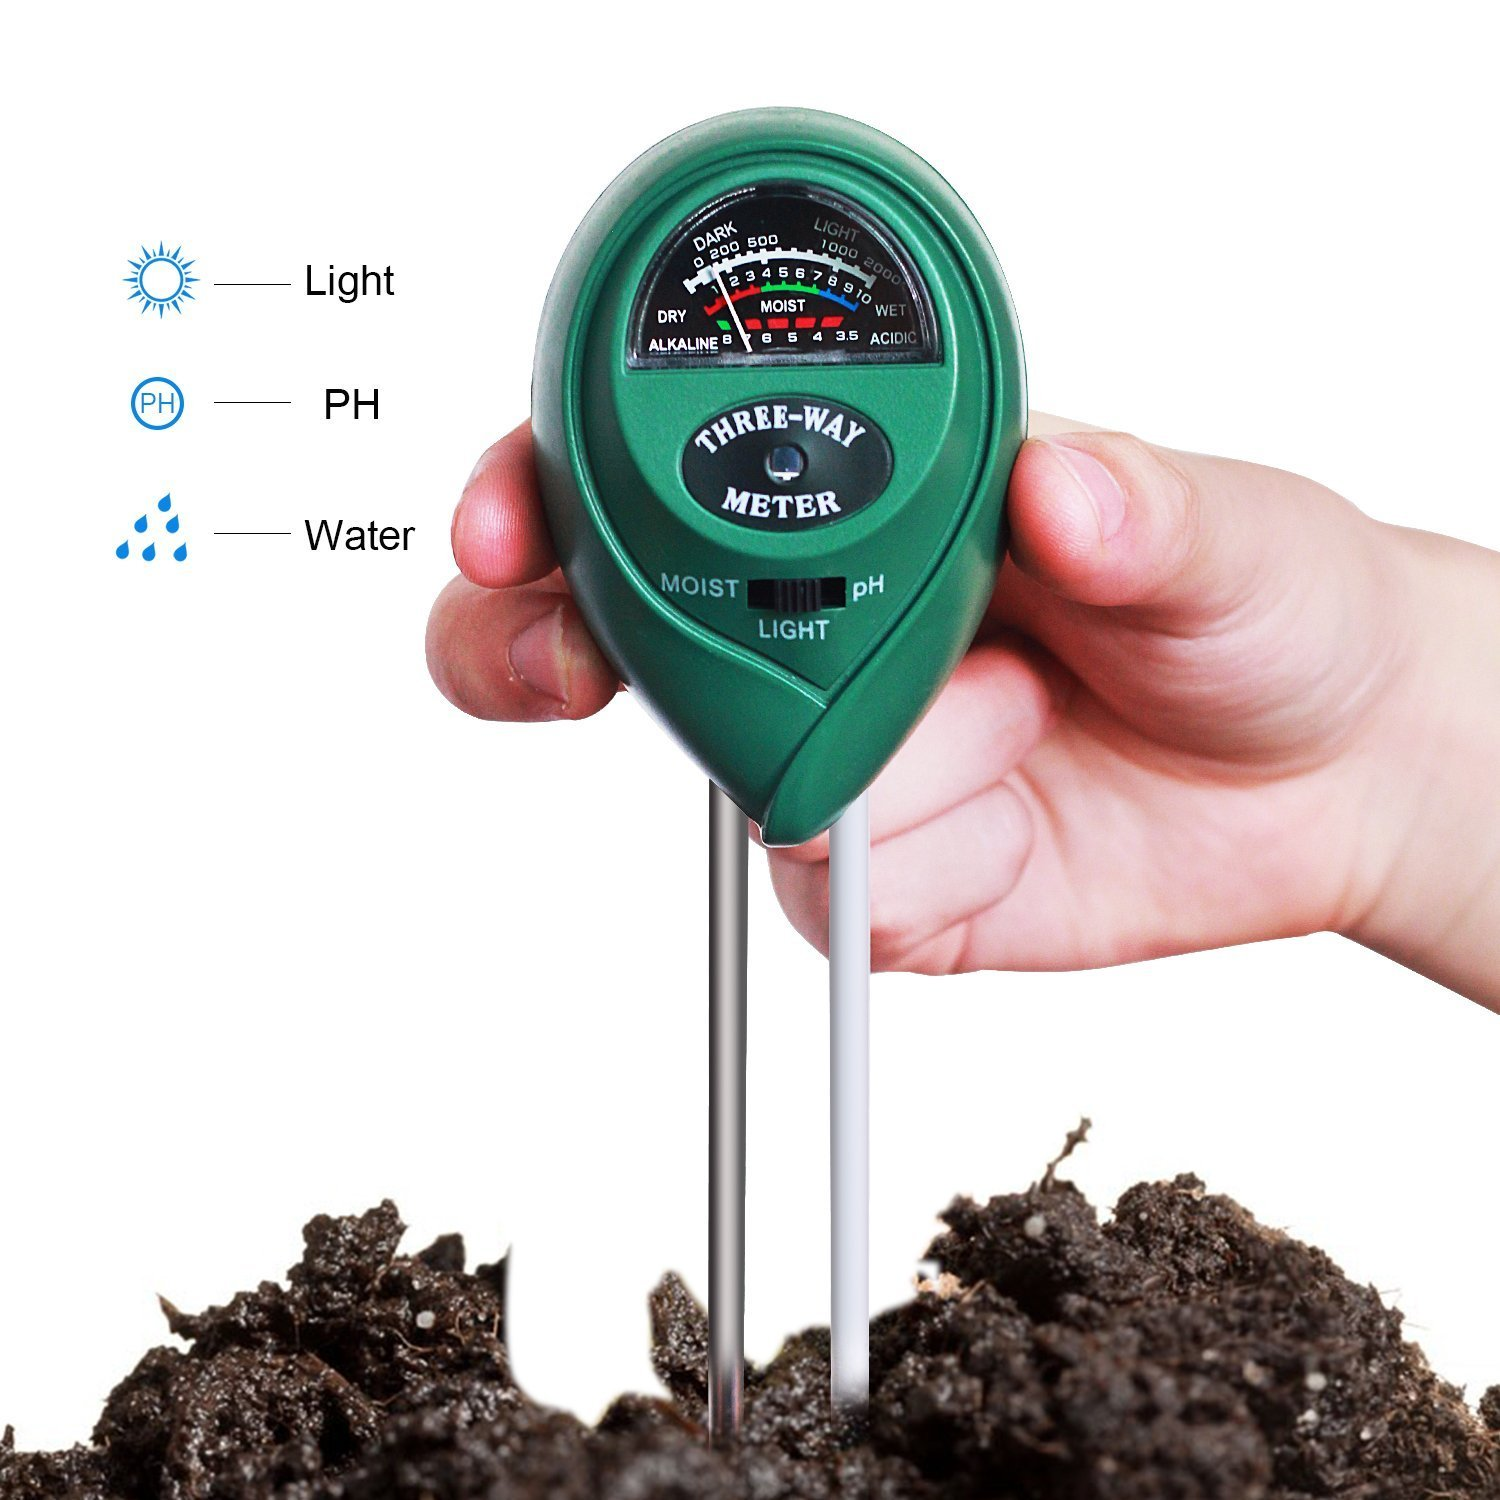 Soil PH Meter, 3-in-1 Soil Moisture Meter with Light, PH & Acidity Meter Plant Soil Tester Kits for Gardening Farming meiso